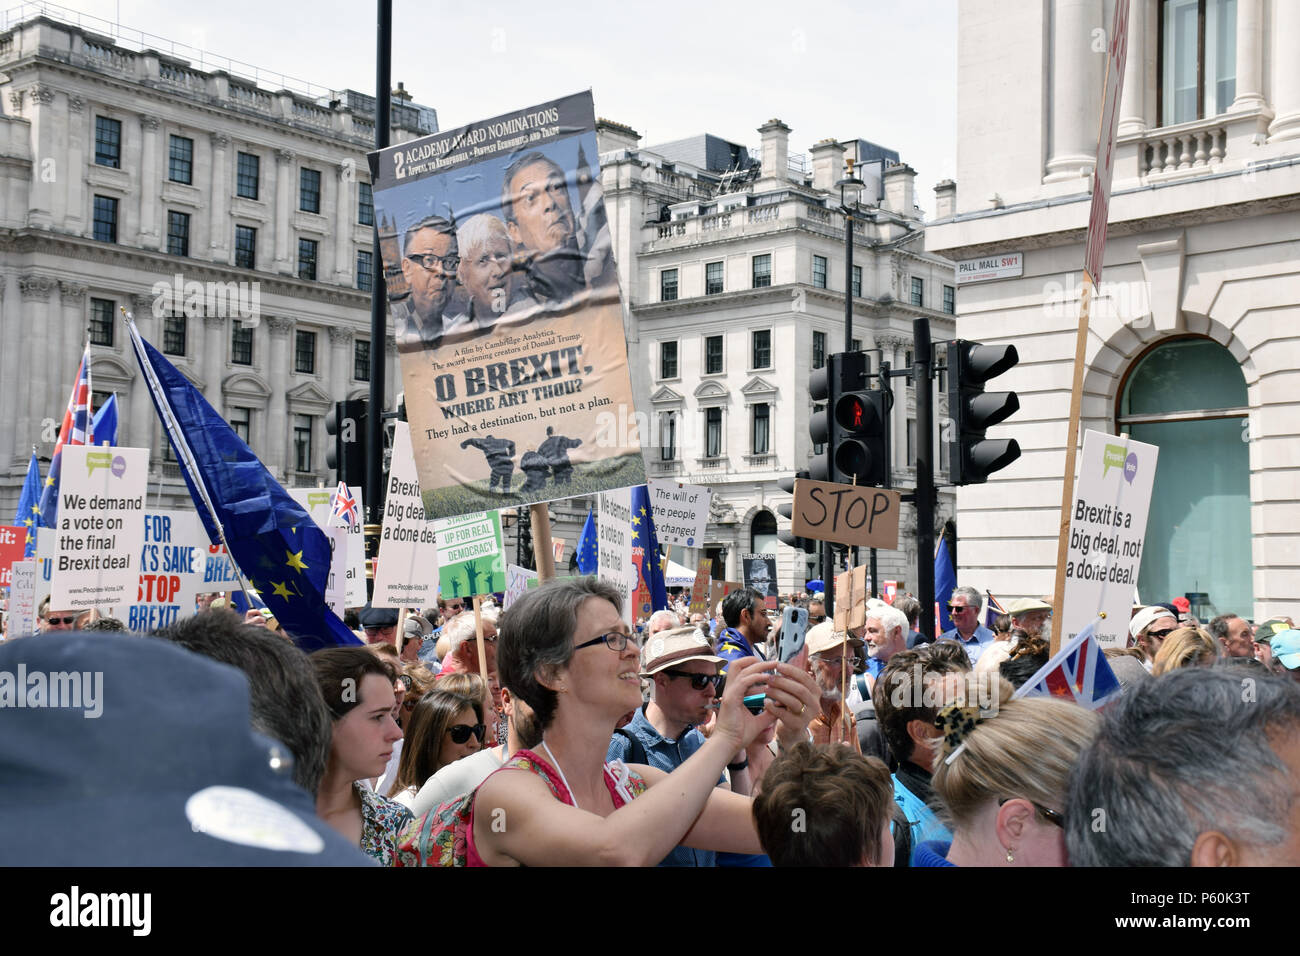 Anti Brexit demo, London 23 June 2018 UK. Campaign for a People's Vote on the final Brexit deal. - Stock Image